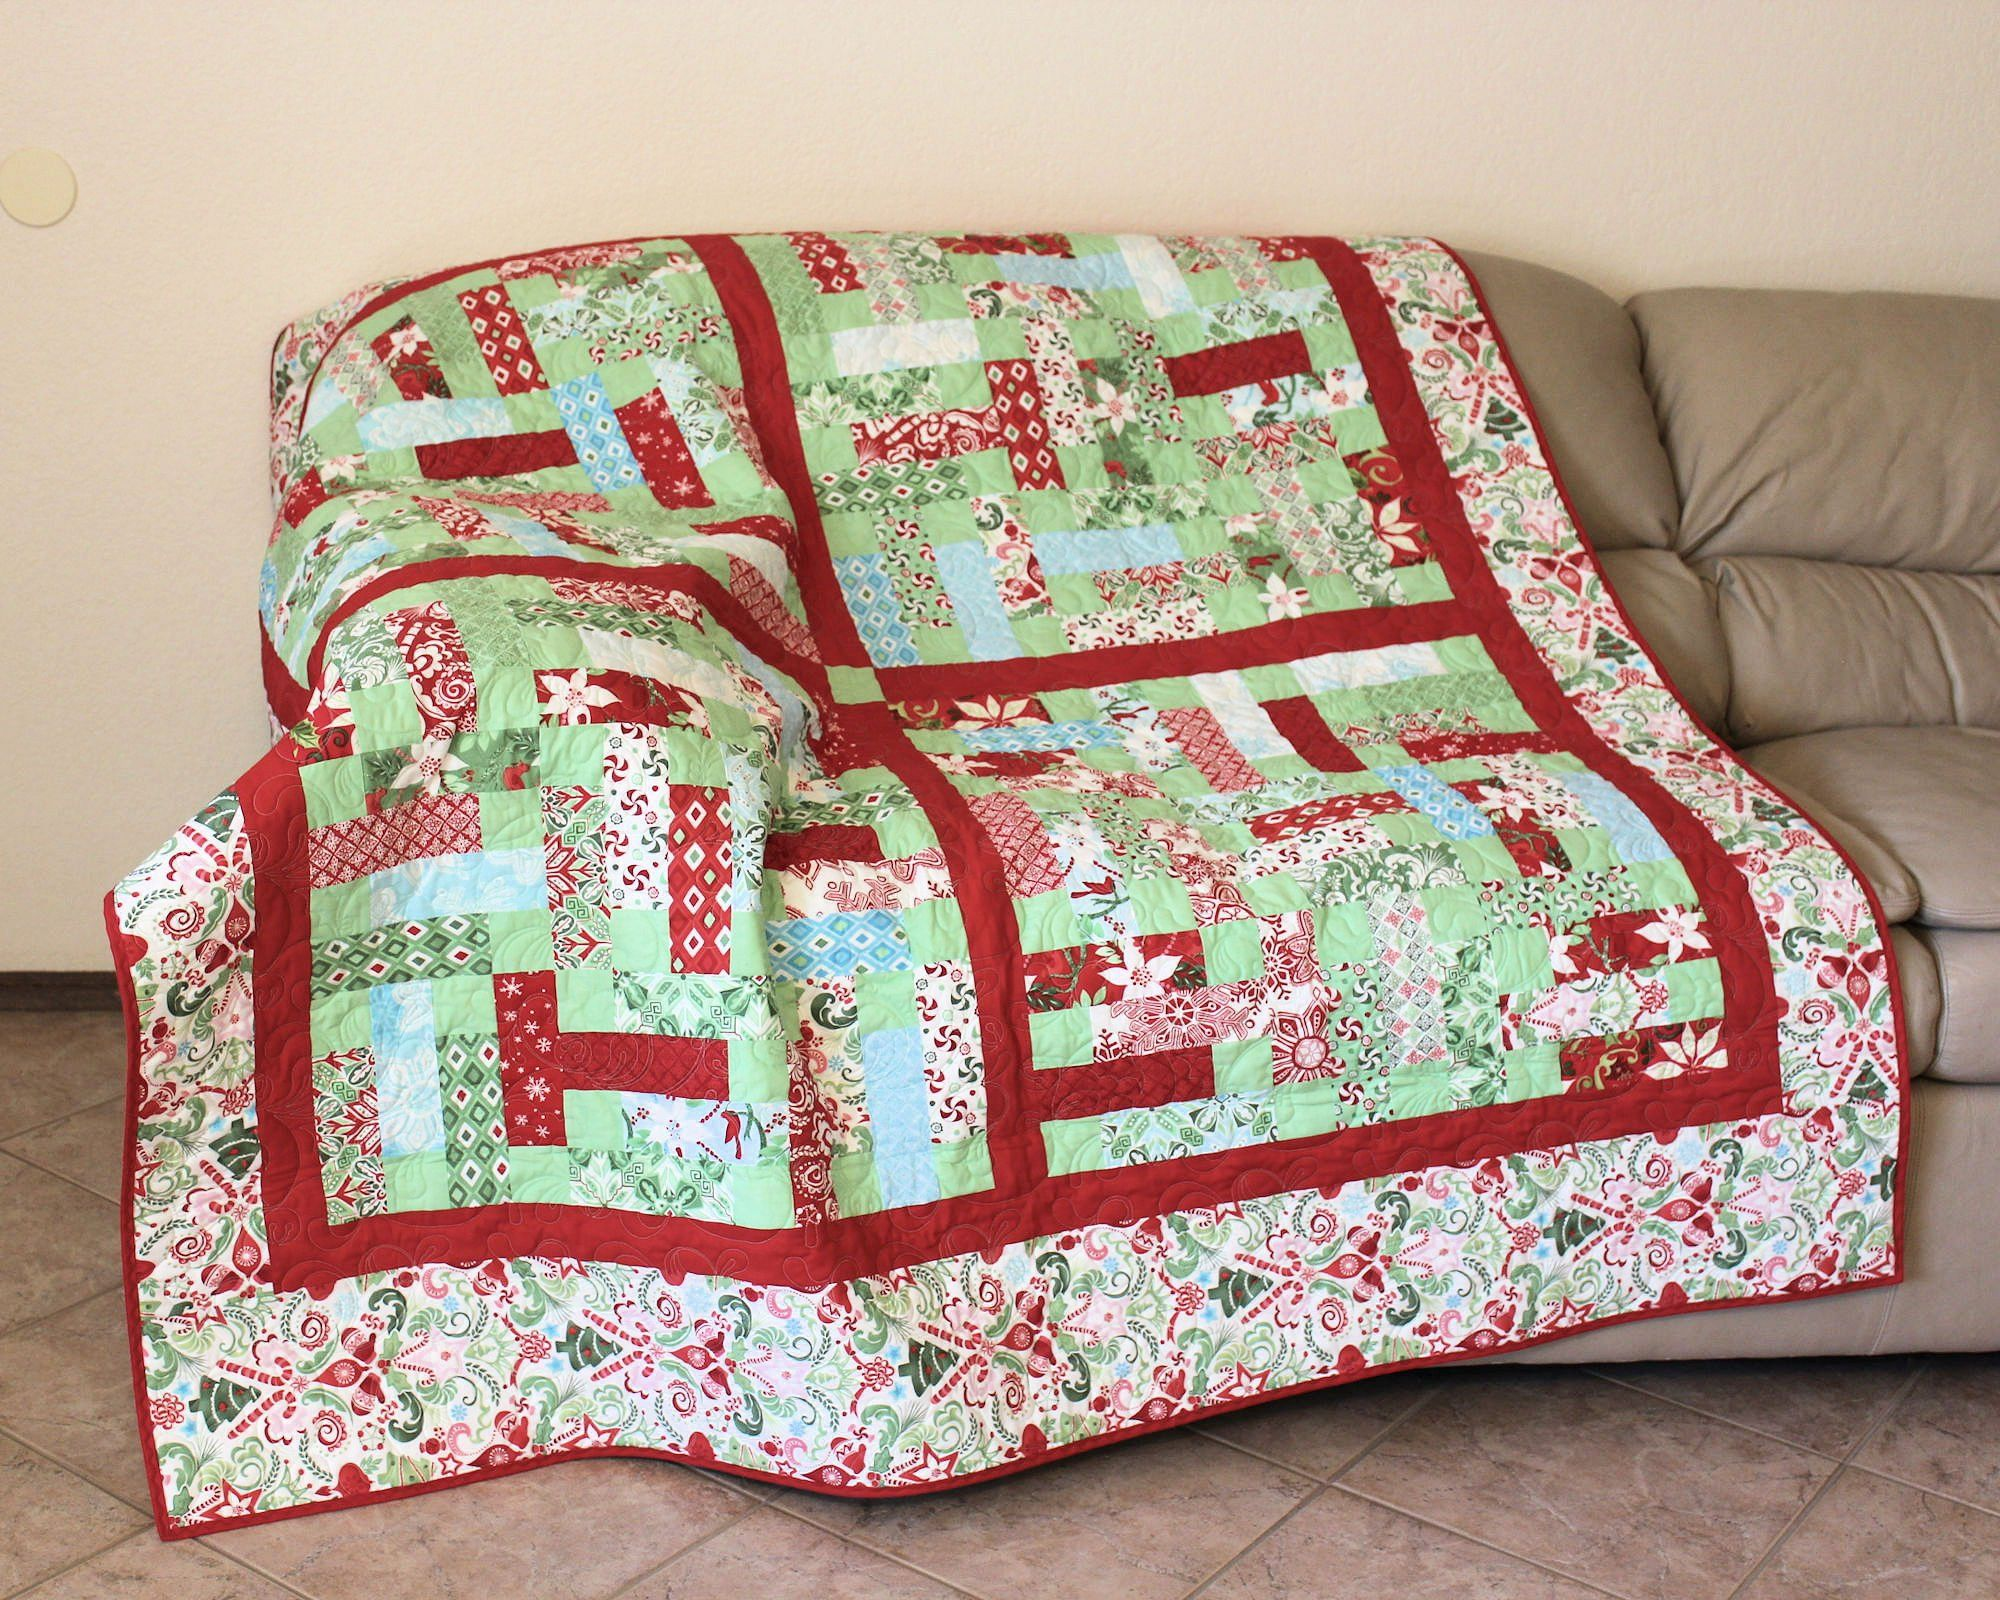 Sofa Quilting Fabric Christmas Lap Quilt Or Sofa Throw Kate Spain S Flurry Fabric